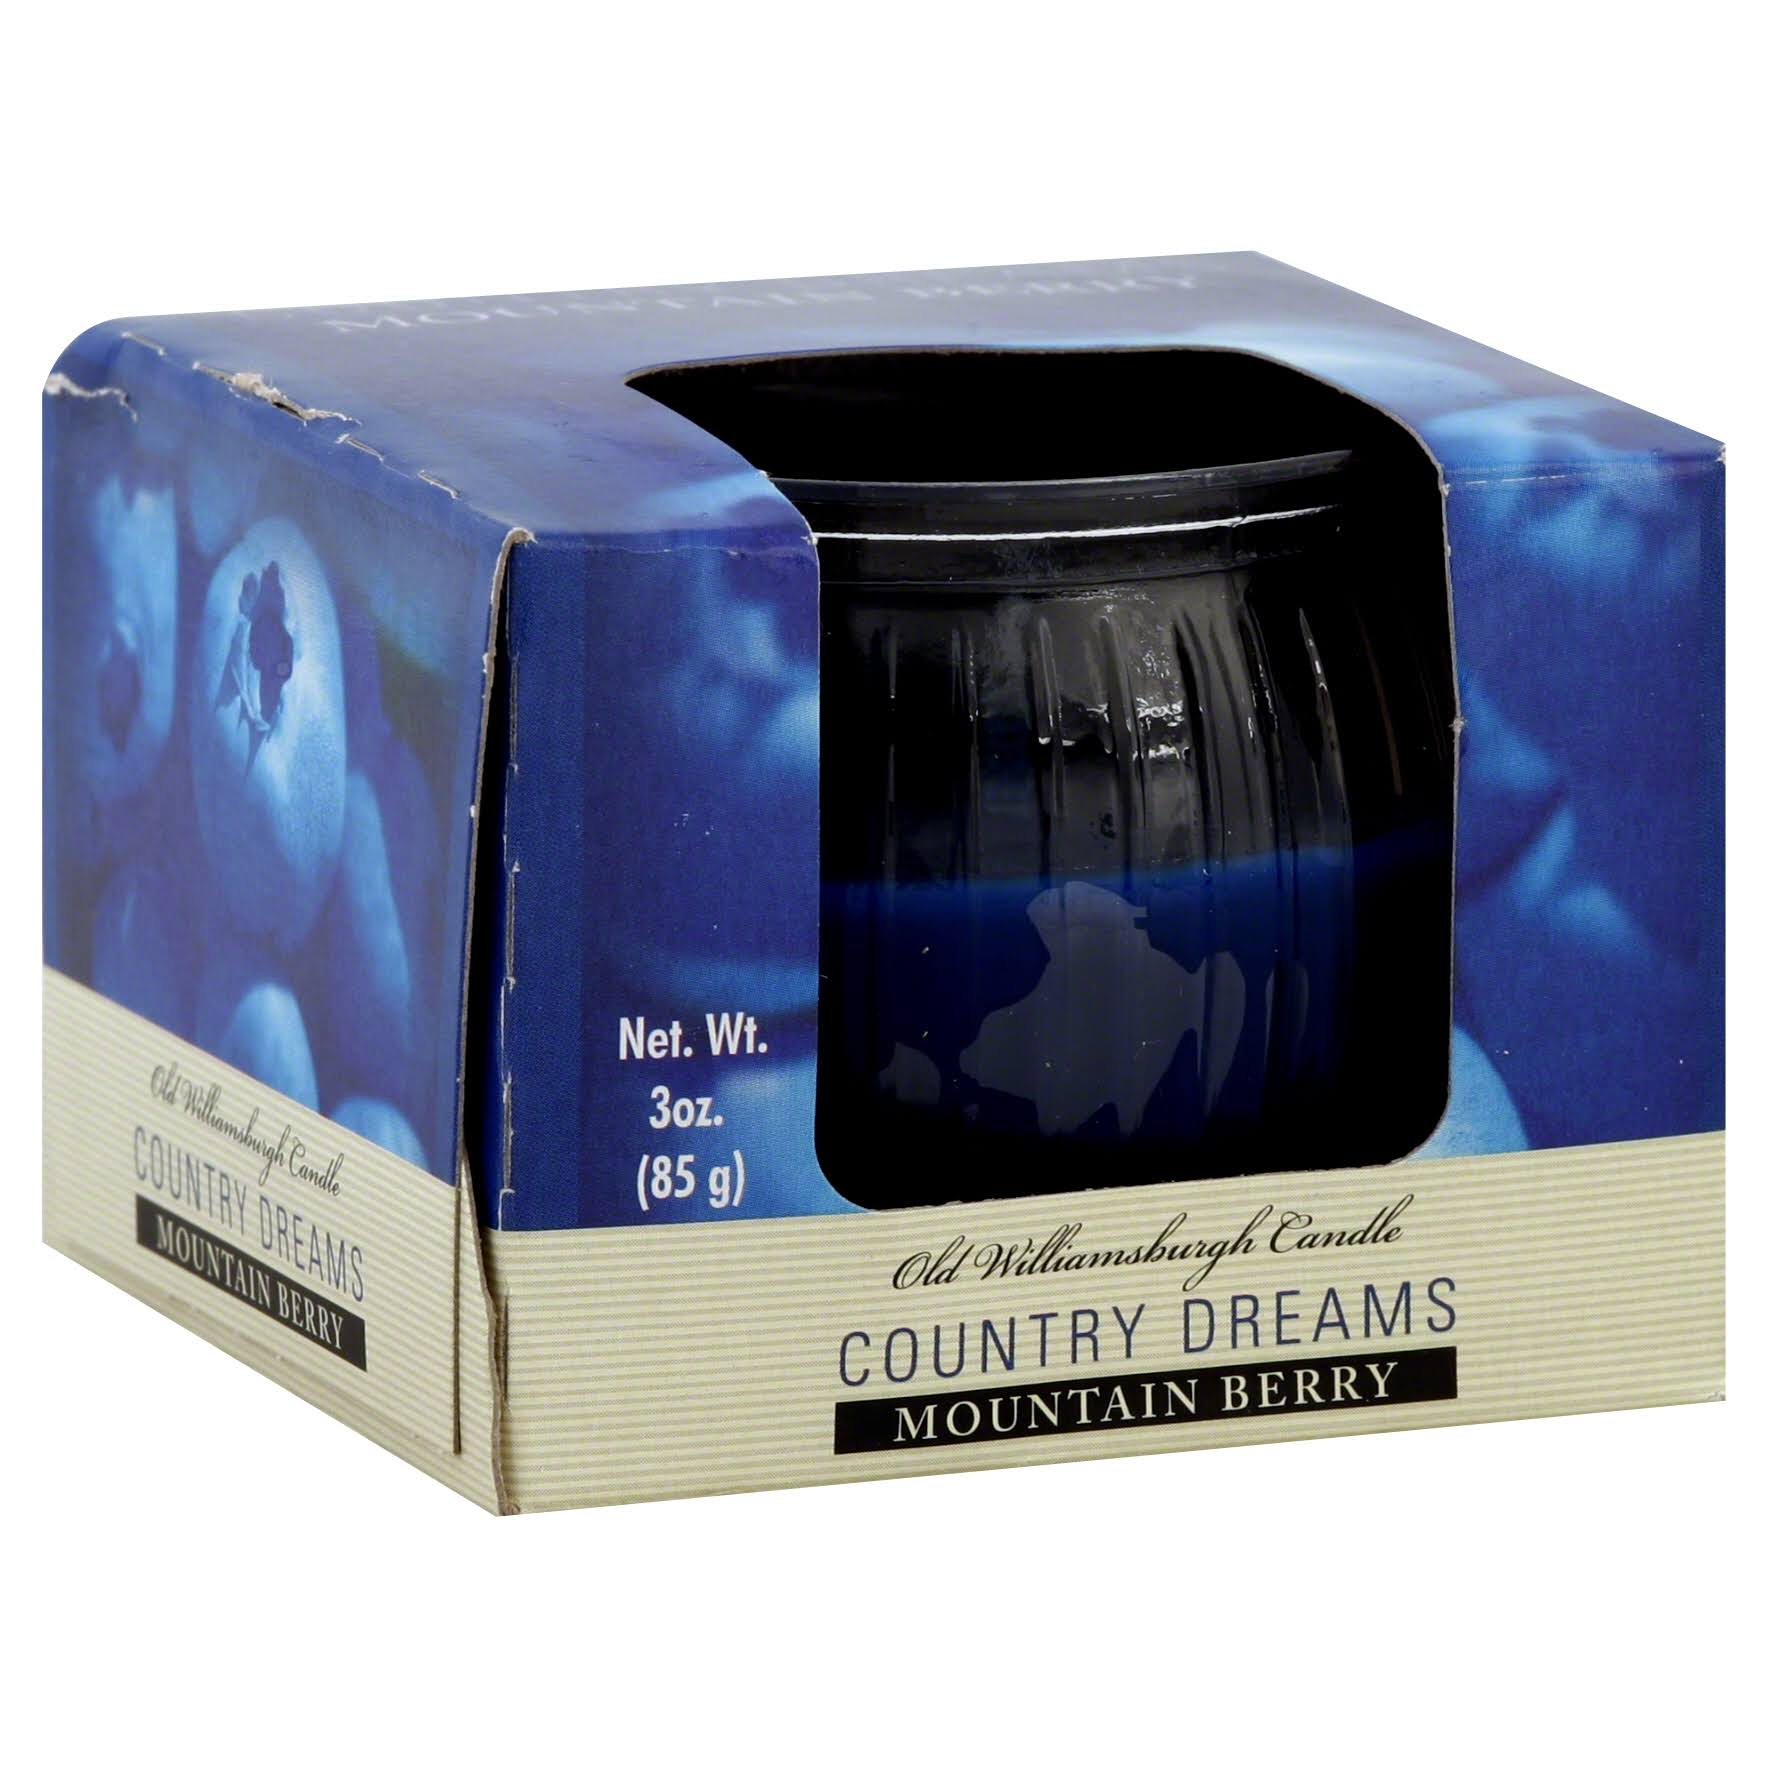 Williamsburgh Country Dreams Candle, Mountain Berry - 1 candle, 3 oz